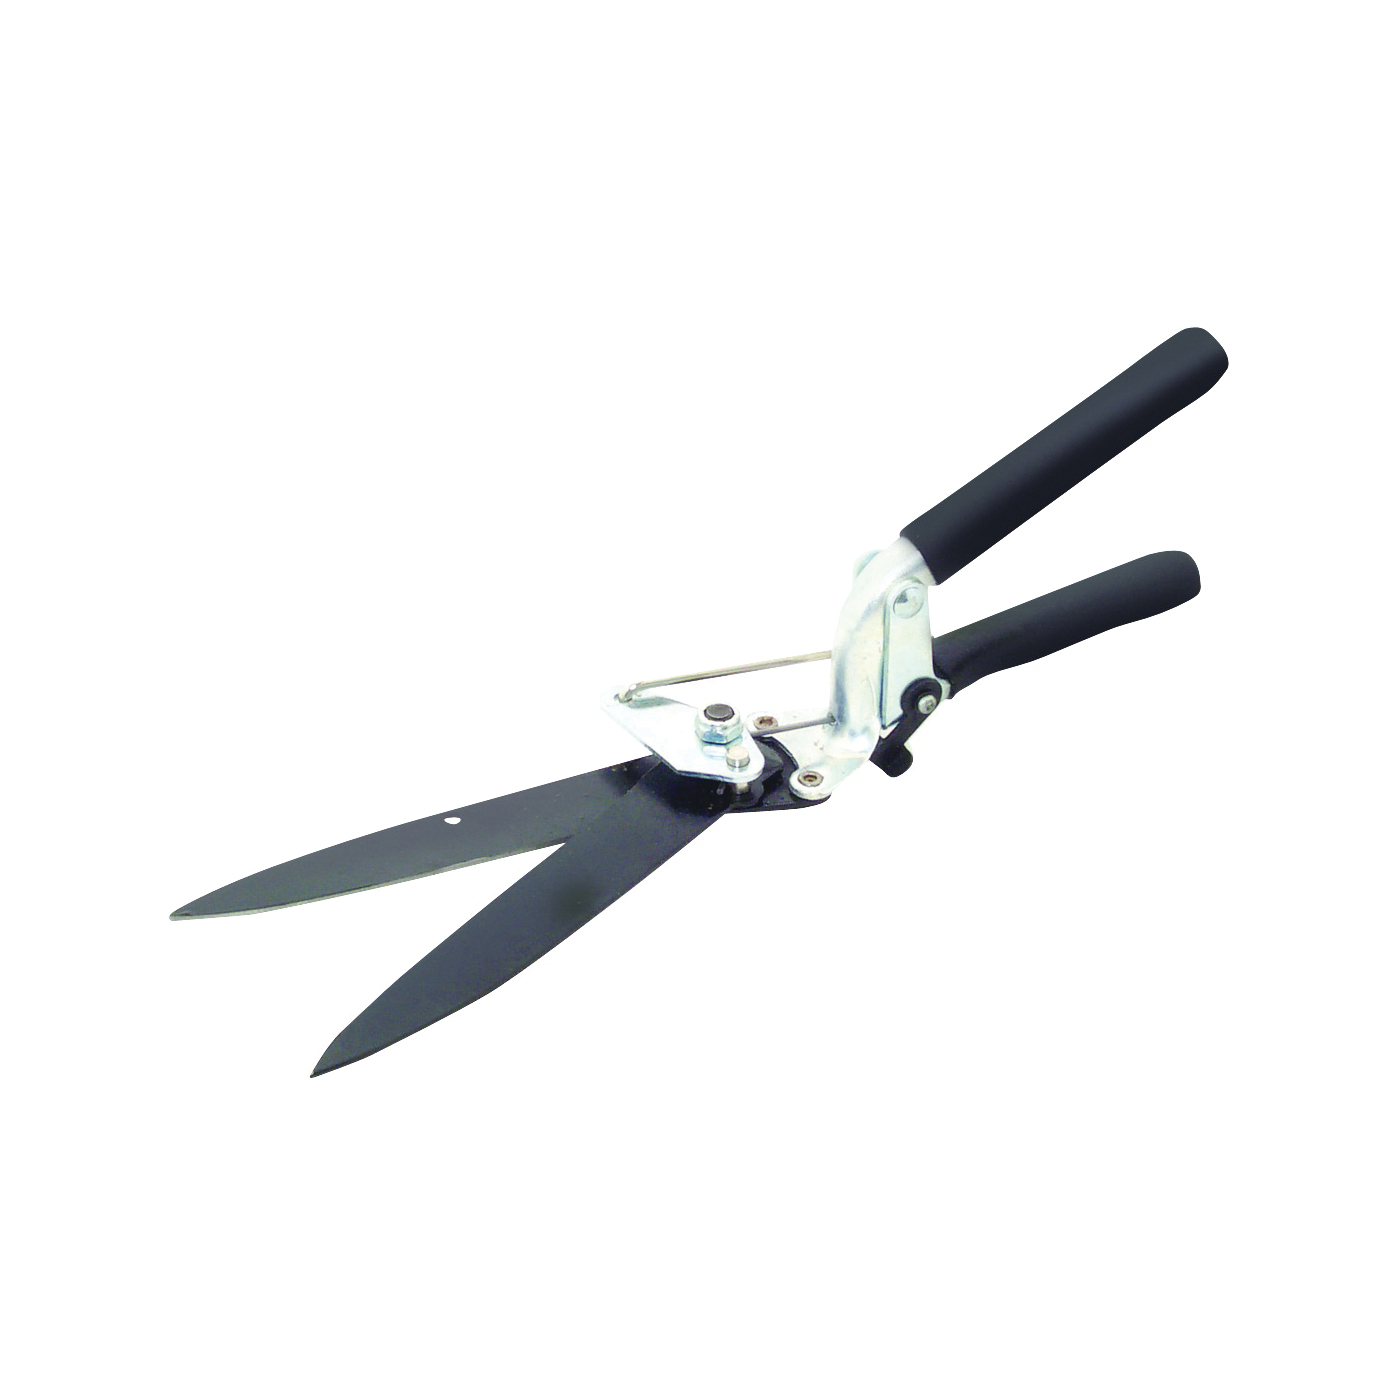 Picture of Gilmour 707T Grass Shear, 5 in L Blade